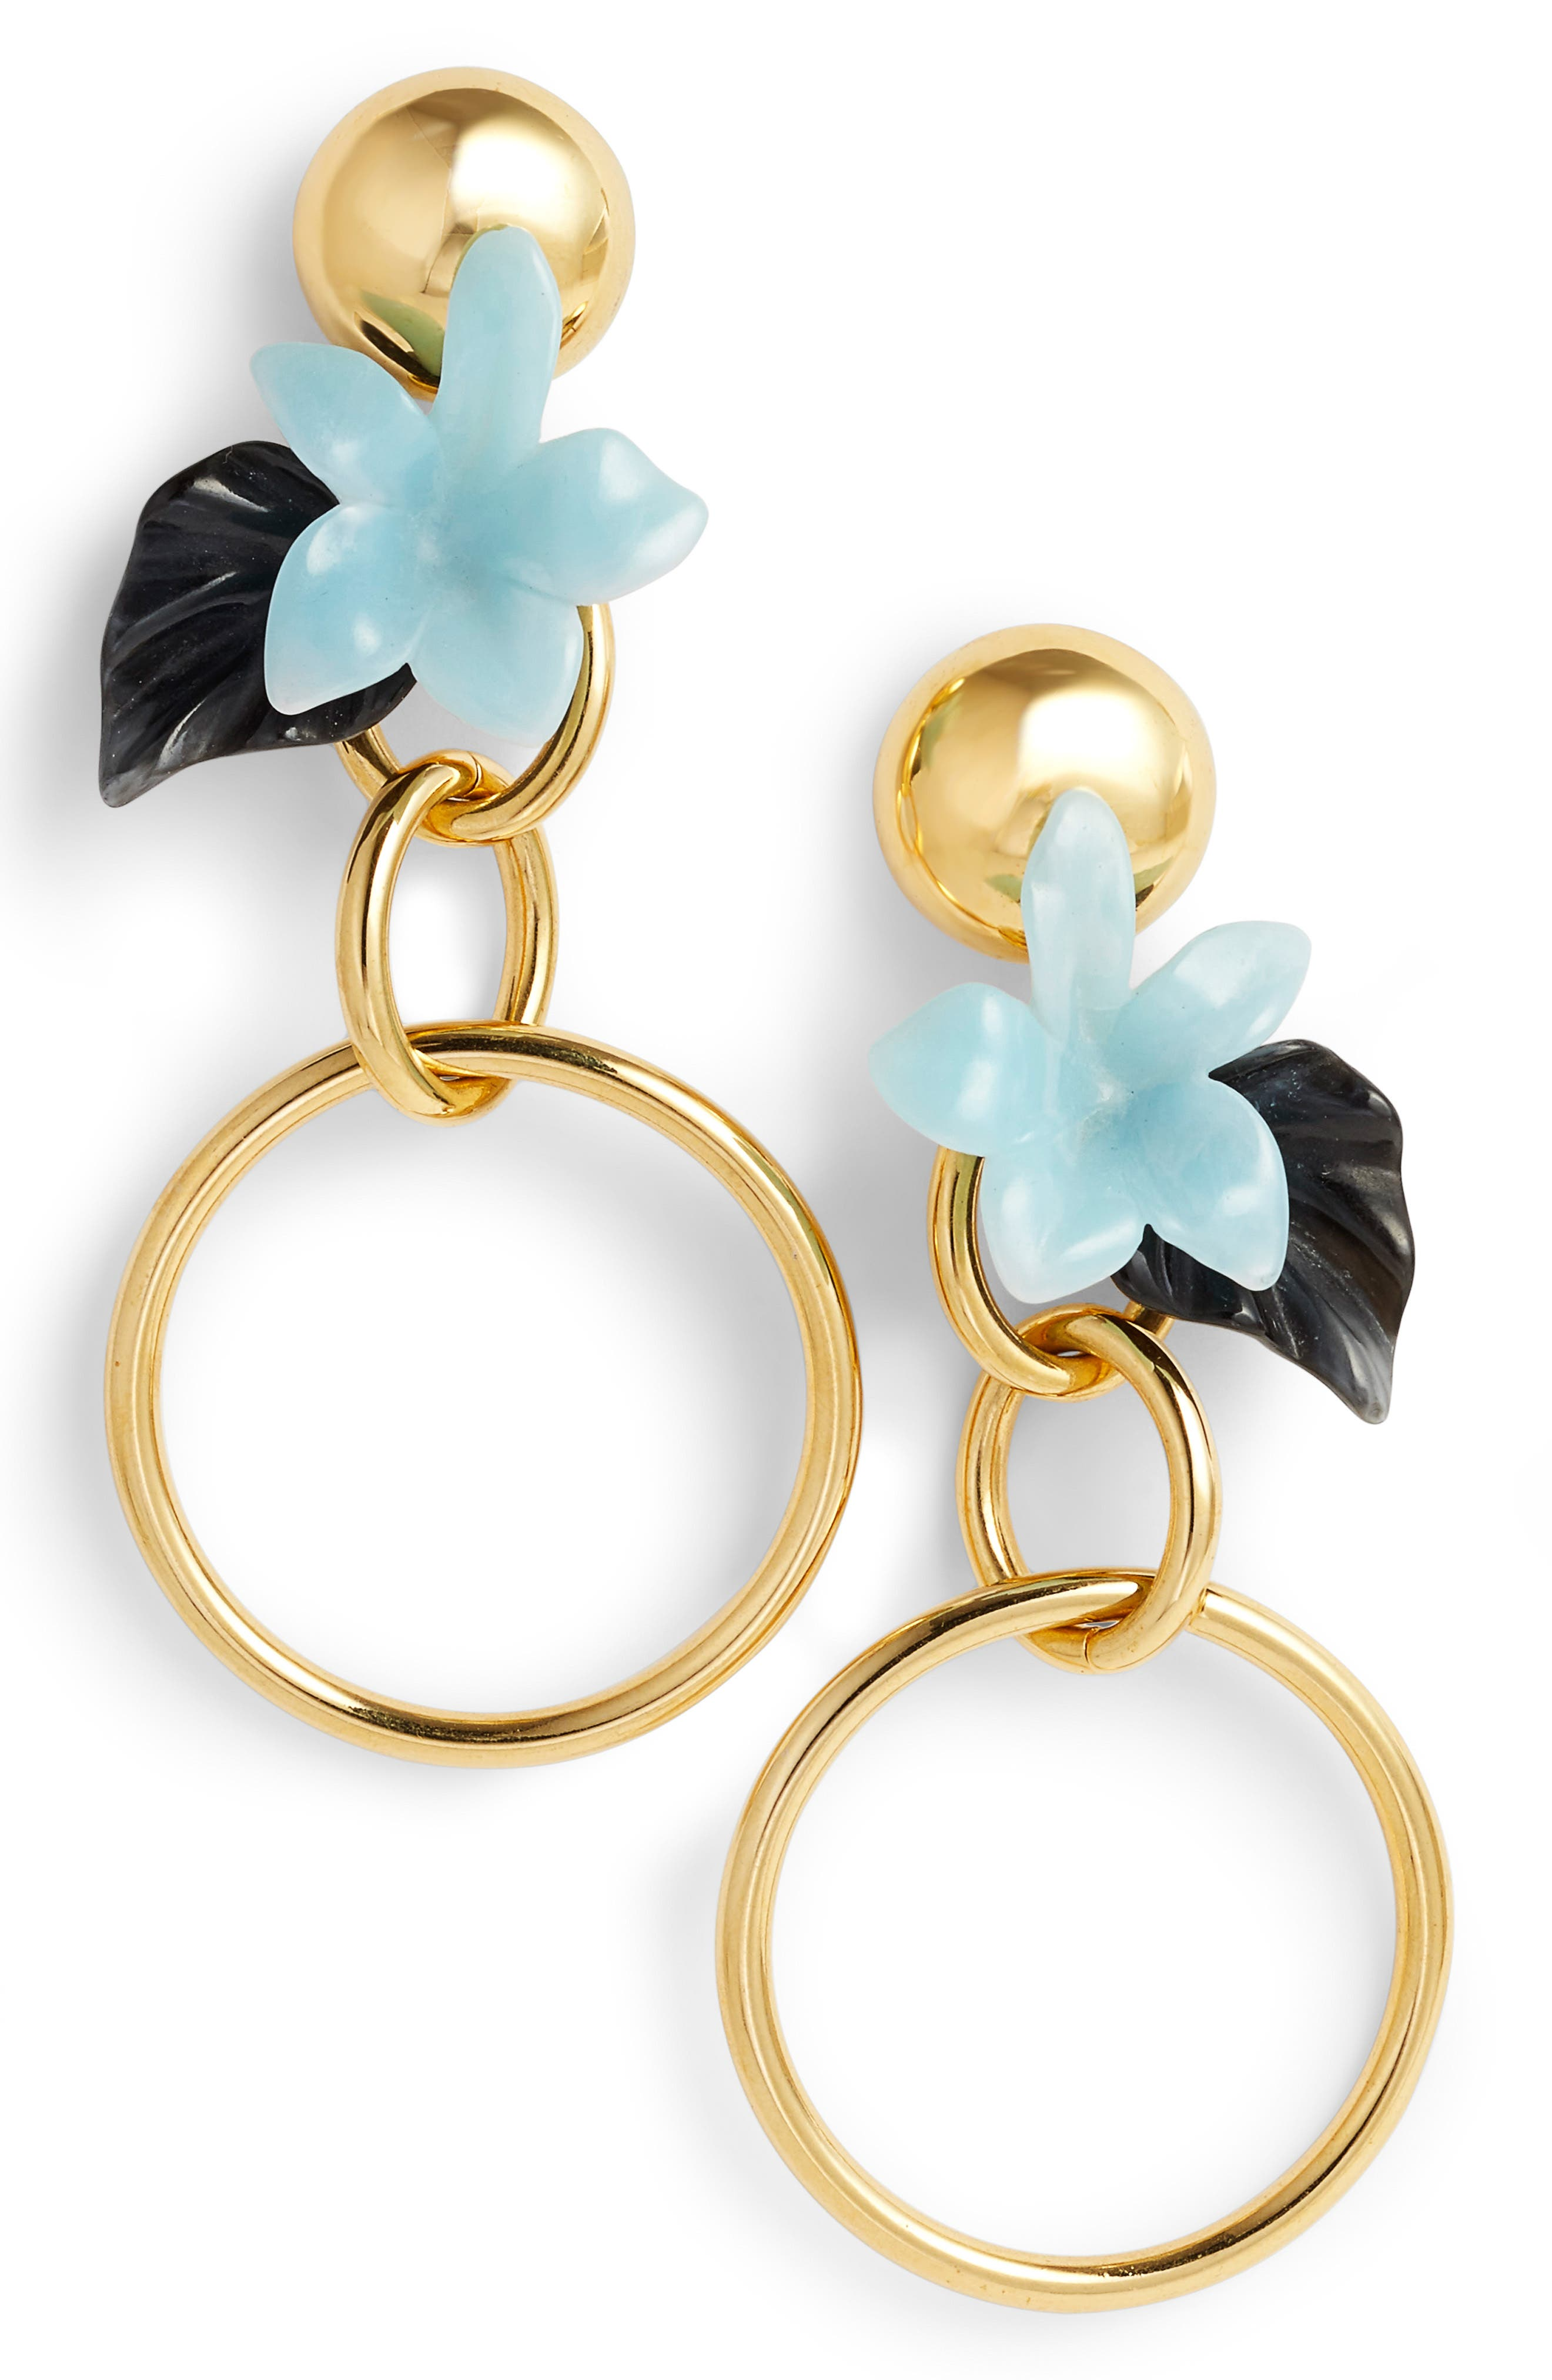 Hibiscus Golden Hoop Drop Earrings,                             Main thumbnail 1, color,                             Sky Blue